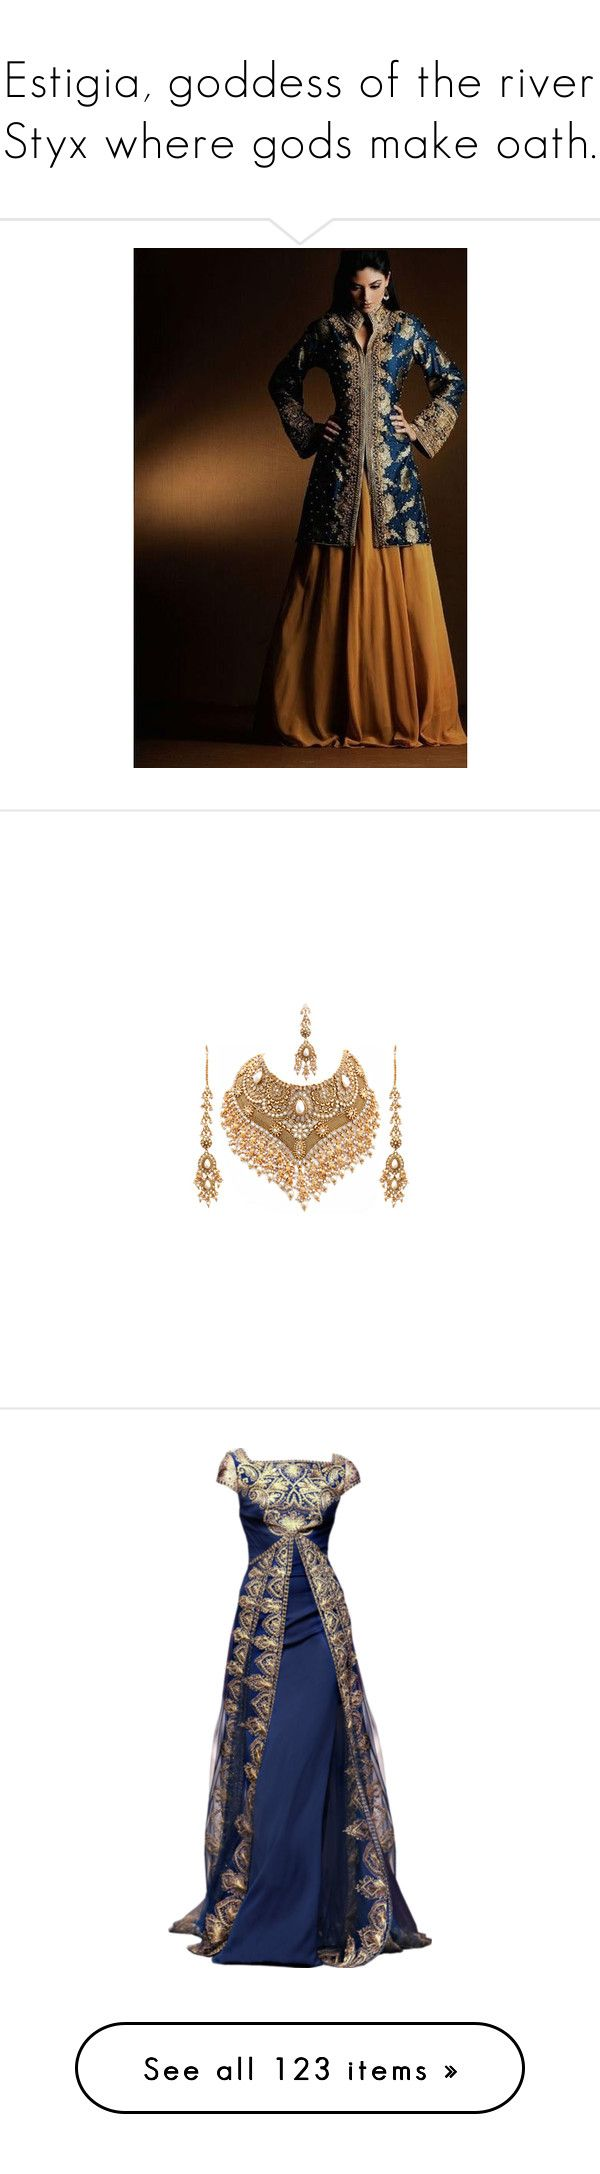 """""""Estigia, goddess of the river Styx where gods make oath."""" by viciousbasterb ❤ liked on Polyvore featuring jewelry, necklaces, accessories, gold, earrings, indian gold jewellery, yellow gold jewelry, gold necklaces, indian gold jewelry and indian jewellery"""